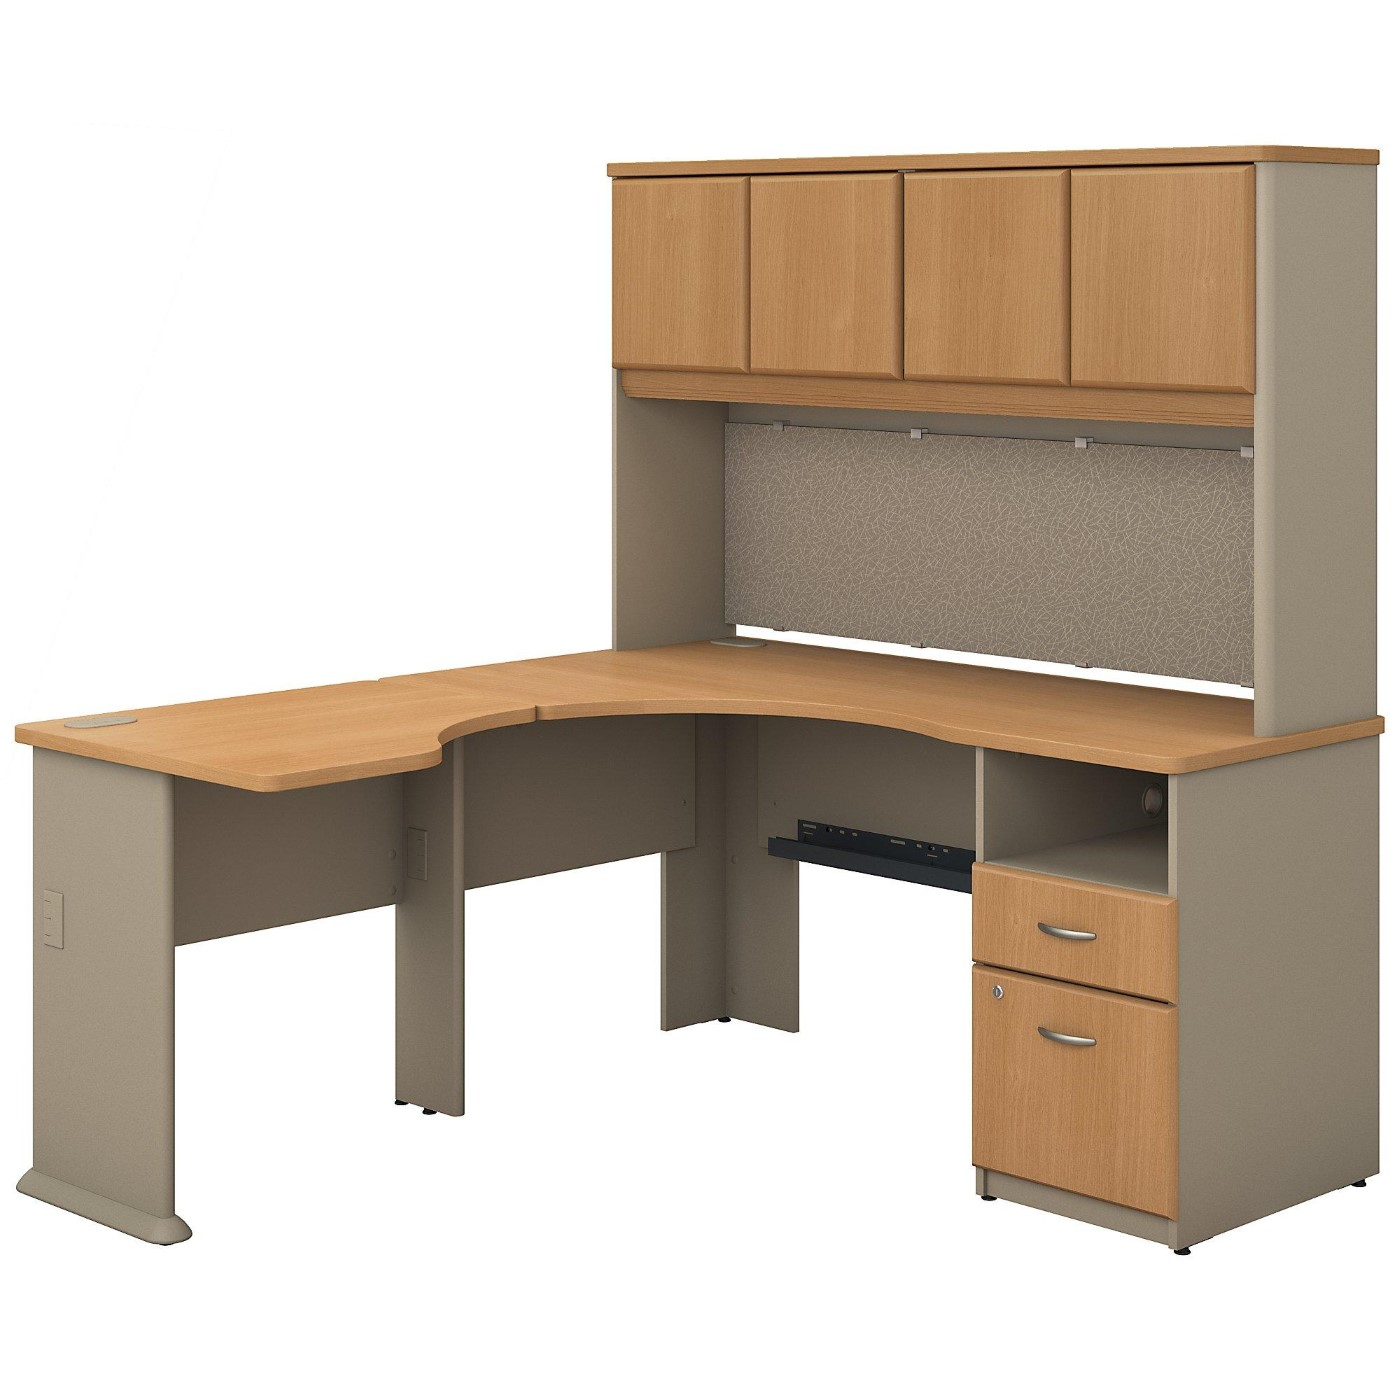 <font color=#c60><b>BUSH BUSINESS FURNITURE SERIES A 60W X 65D L SHAPED DESK WITH HUTCH AND 2 DRAWER PEDESTAL. FREE SHIPPING</font></b>